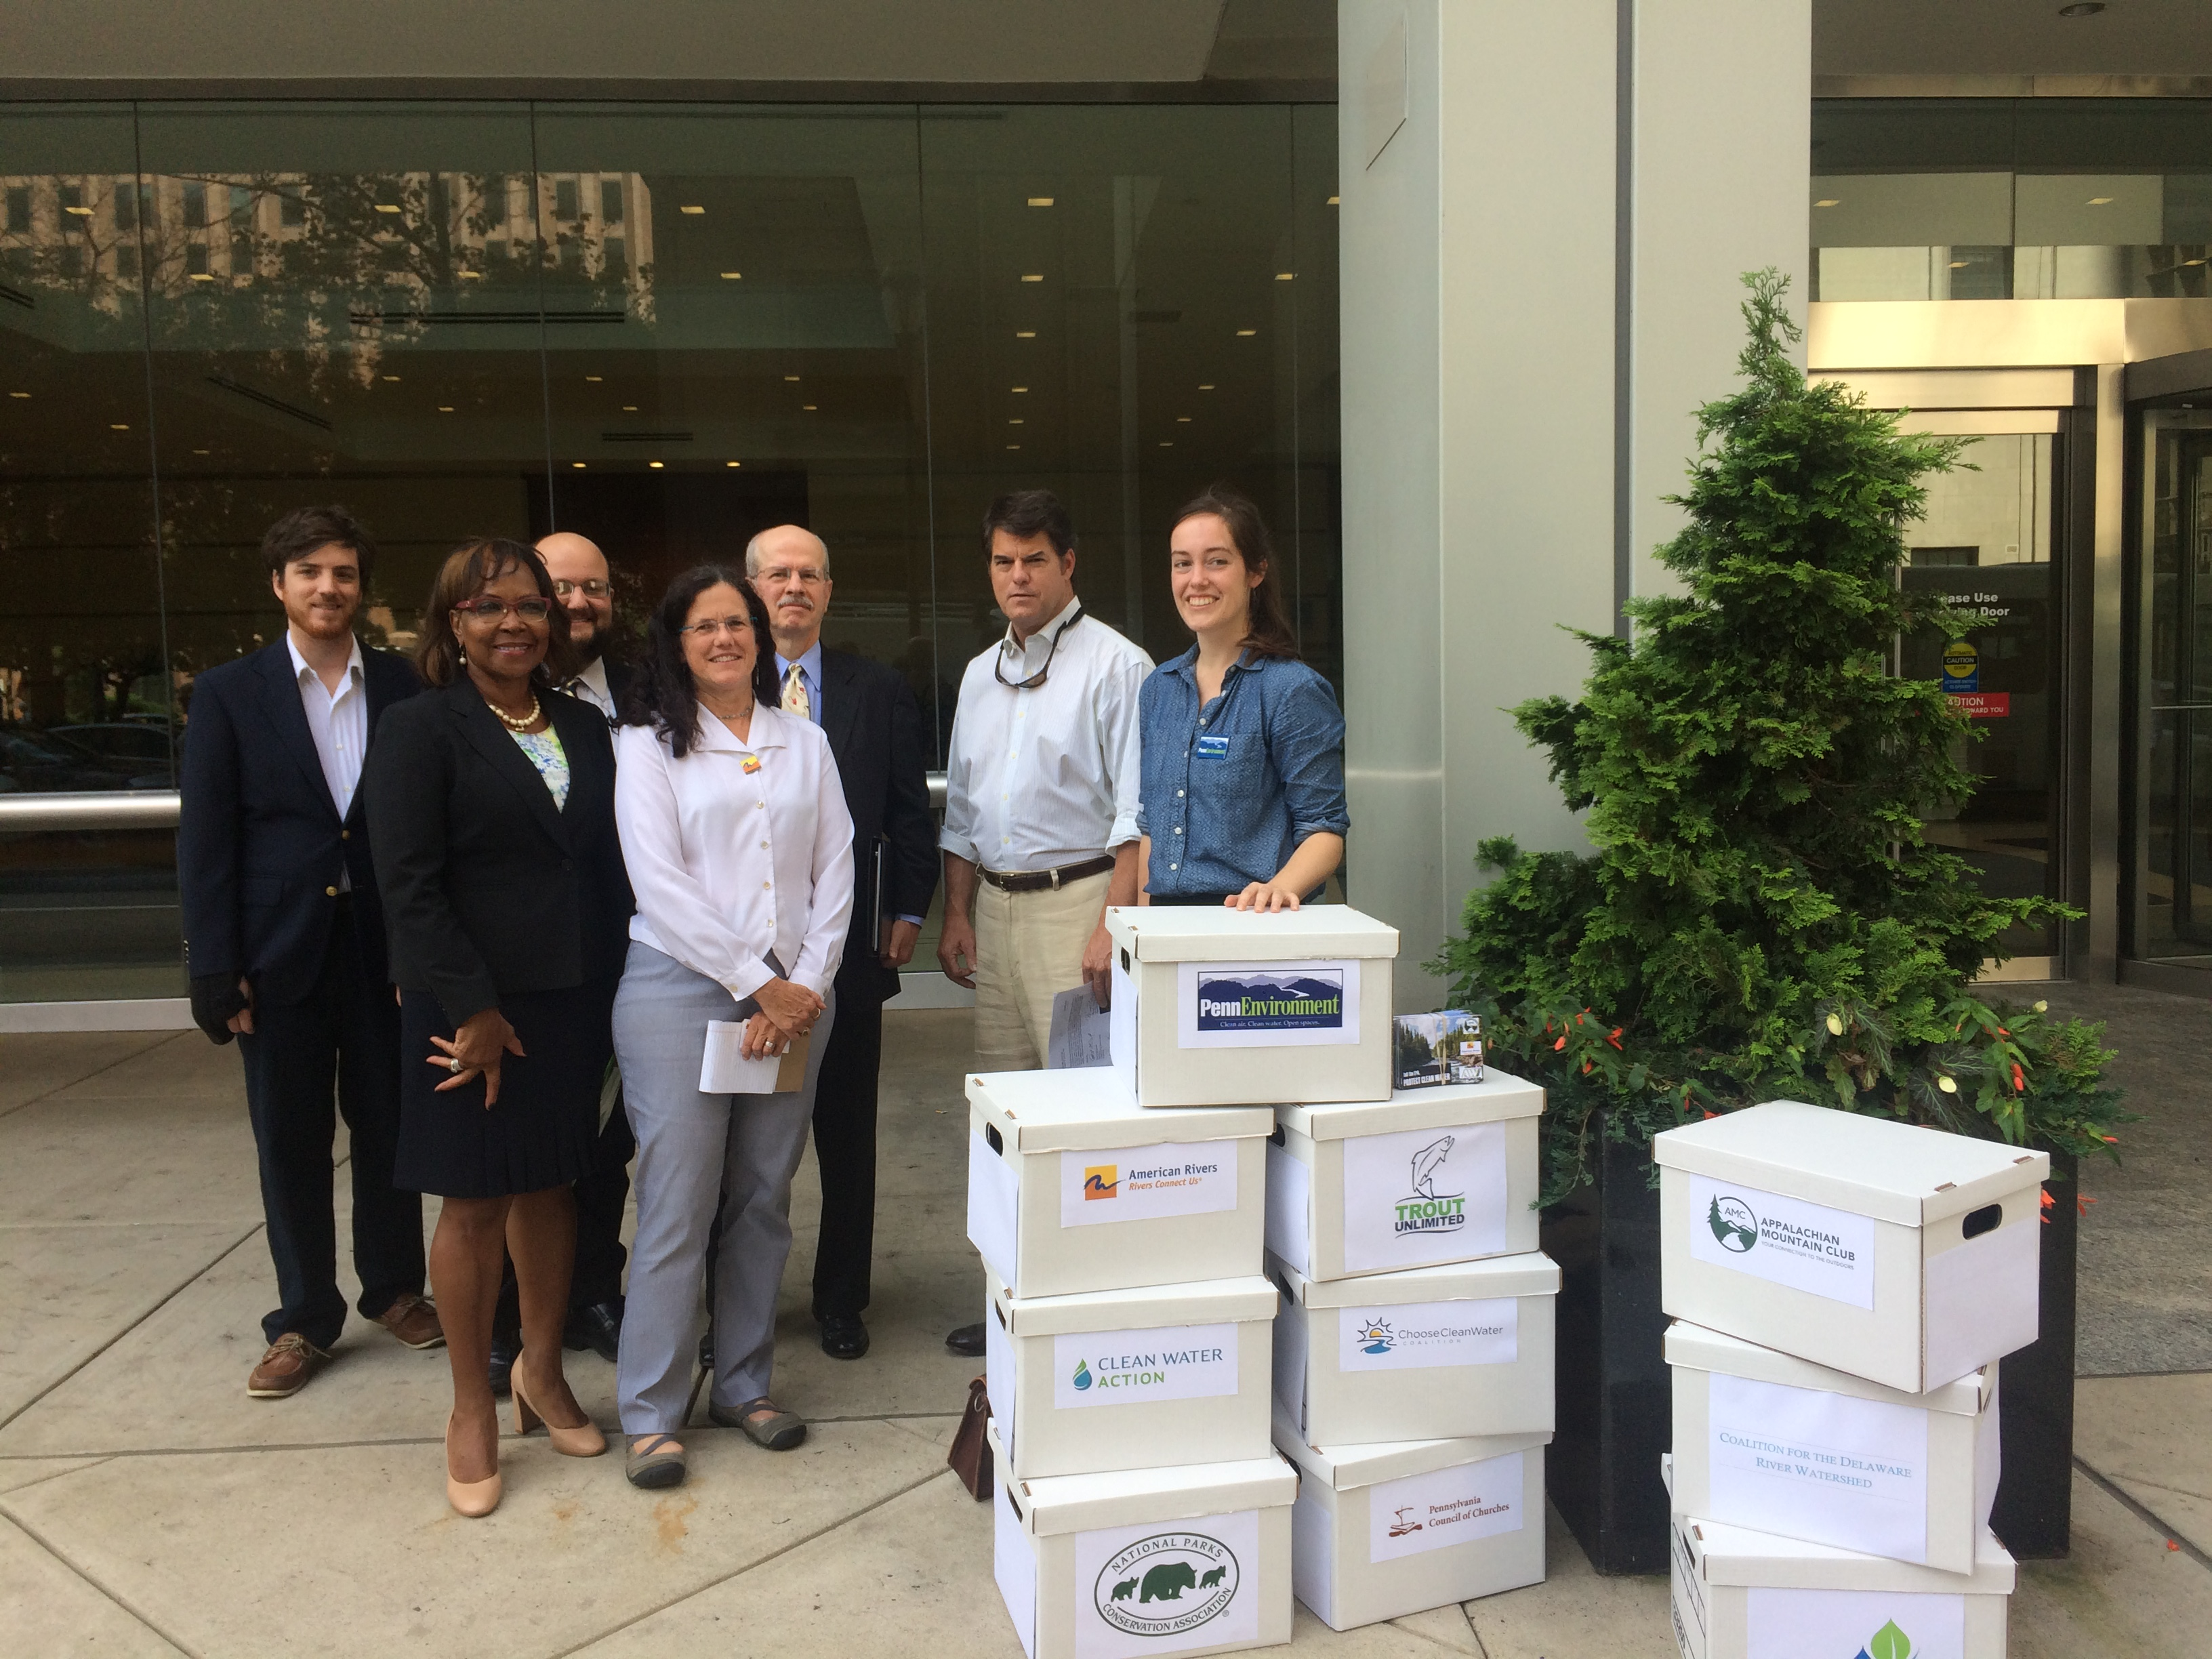 Environmental organizations symbolically delivered 20,000 public comments to EPA in support of the clean water rule.